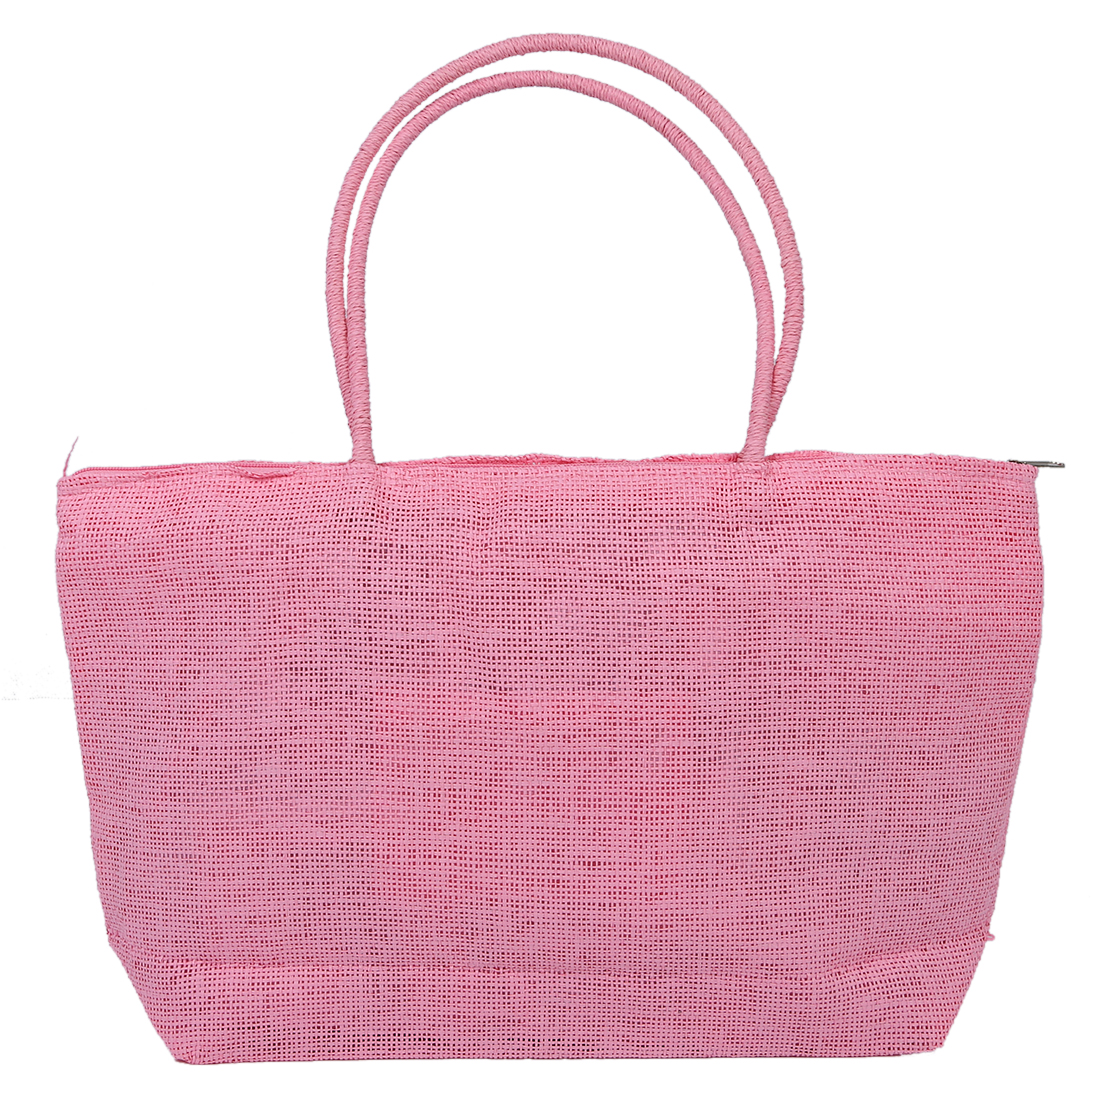 Fashion Ladies Woven Weave Straw Summer Tote Shoulder Bag Beach Shopping Handbag - Pink